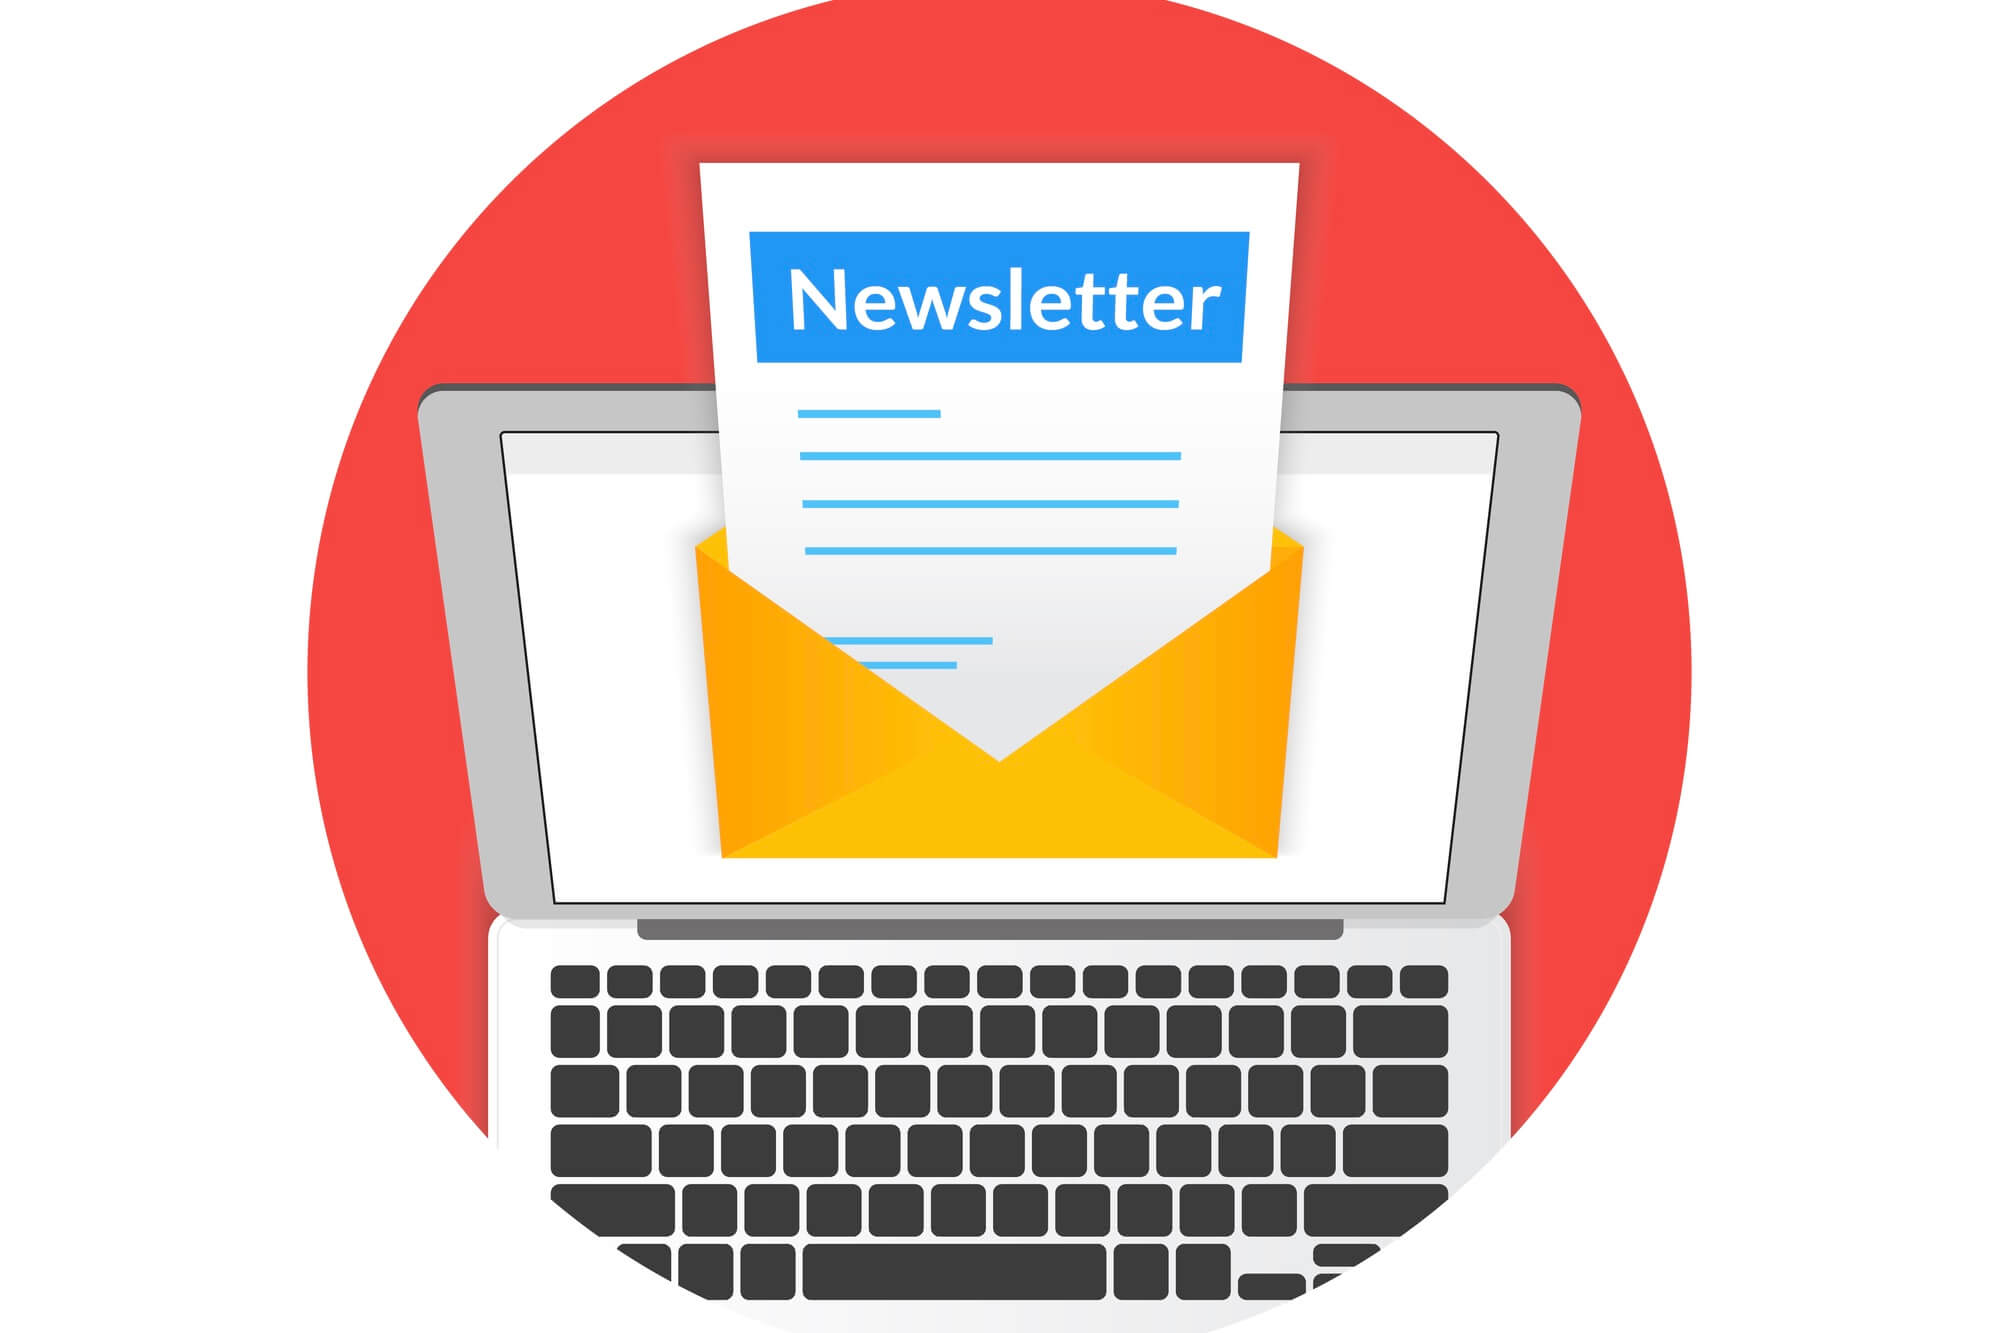 Newsletter illustration with laptop isolated round red icon